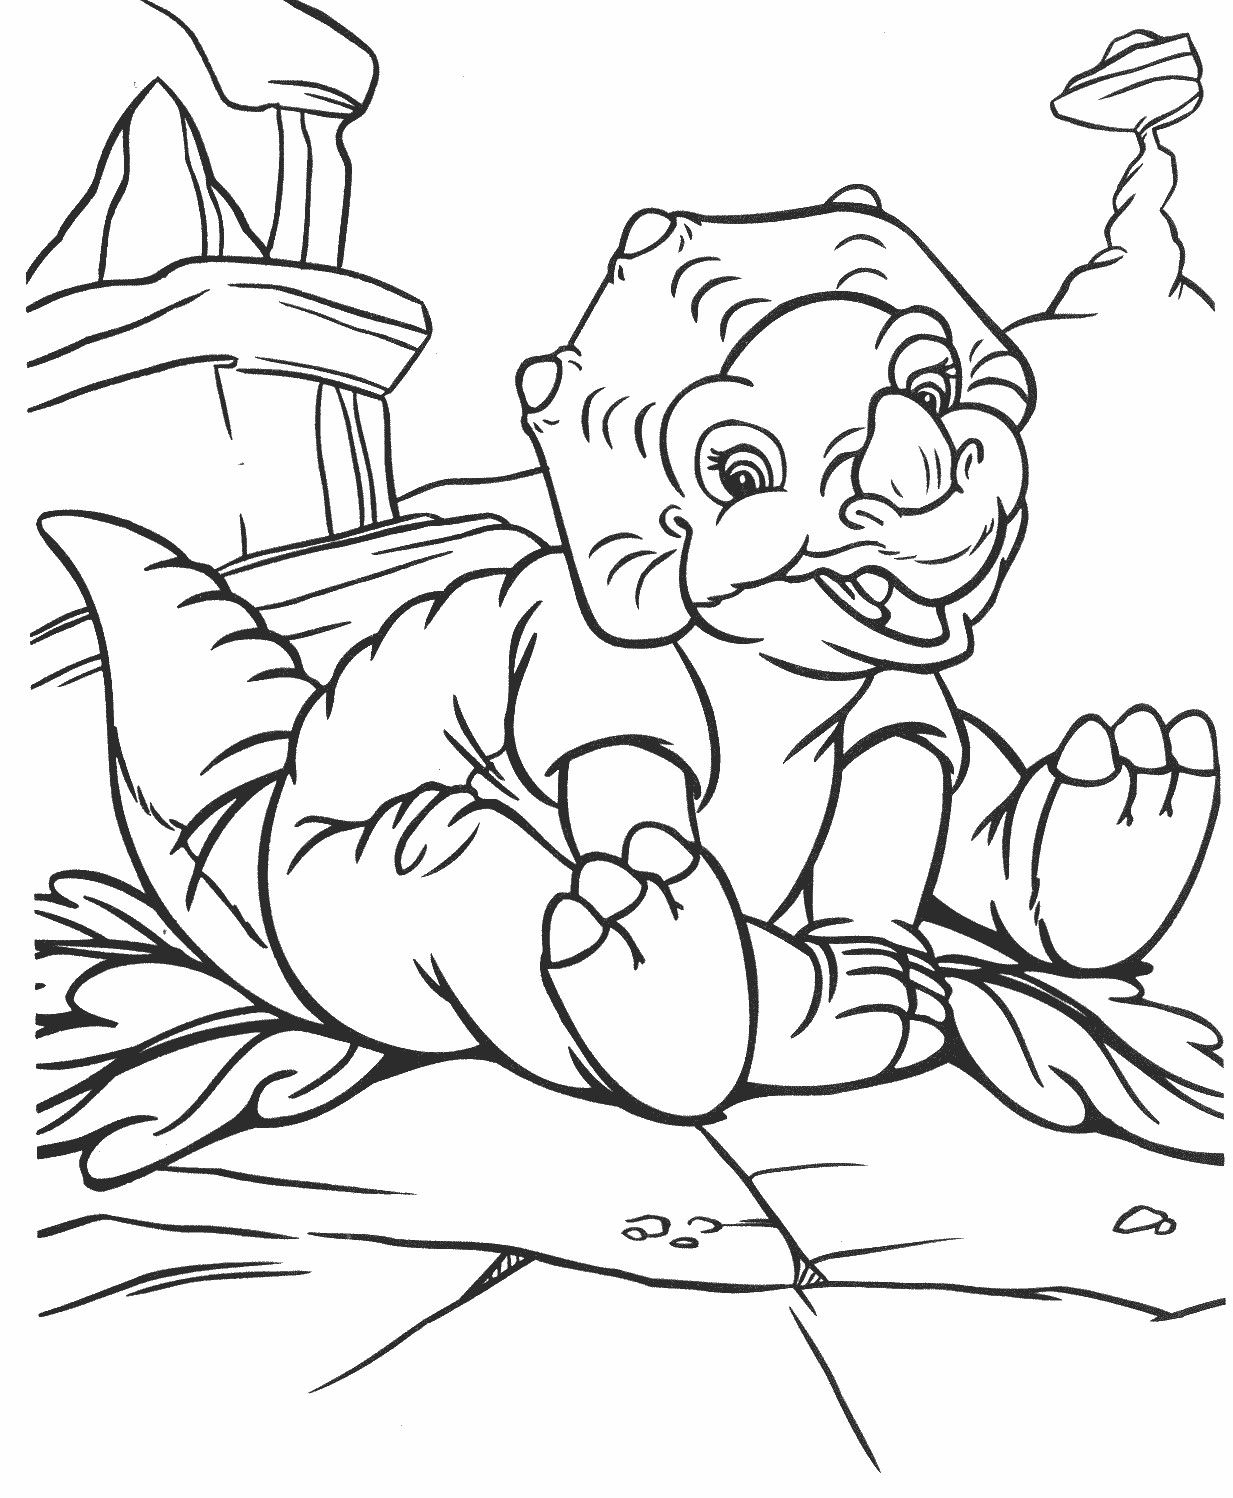 Pin By Largest Coloring Book Collecti On 33 000 Top Coloring Pages In 2020 Dinosaur Coloring Pages Dinosaur Coloring Baby Coloring Pages